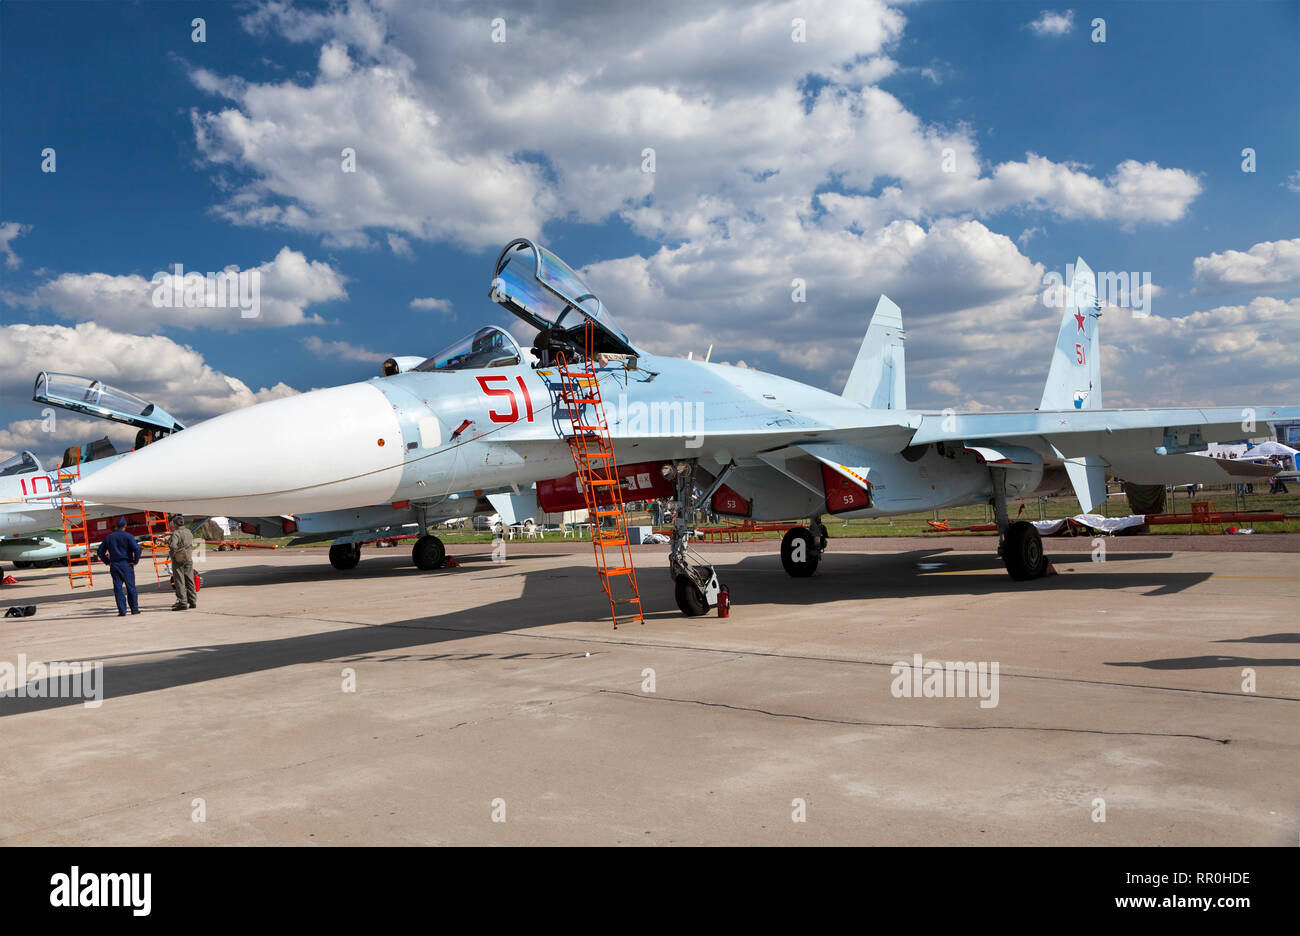 Russian multipurpose highly maneuverable all-weather fighter of the fourth generation SU-27SM3 at the exposition of MAKS 2011, Zhukovsky, Russia - Stock Image